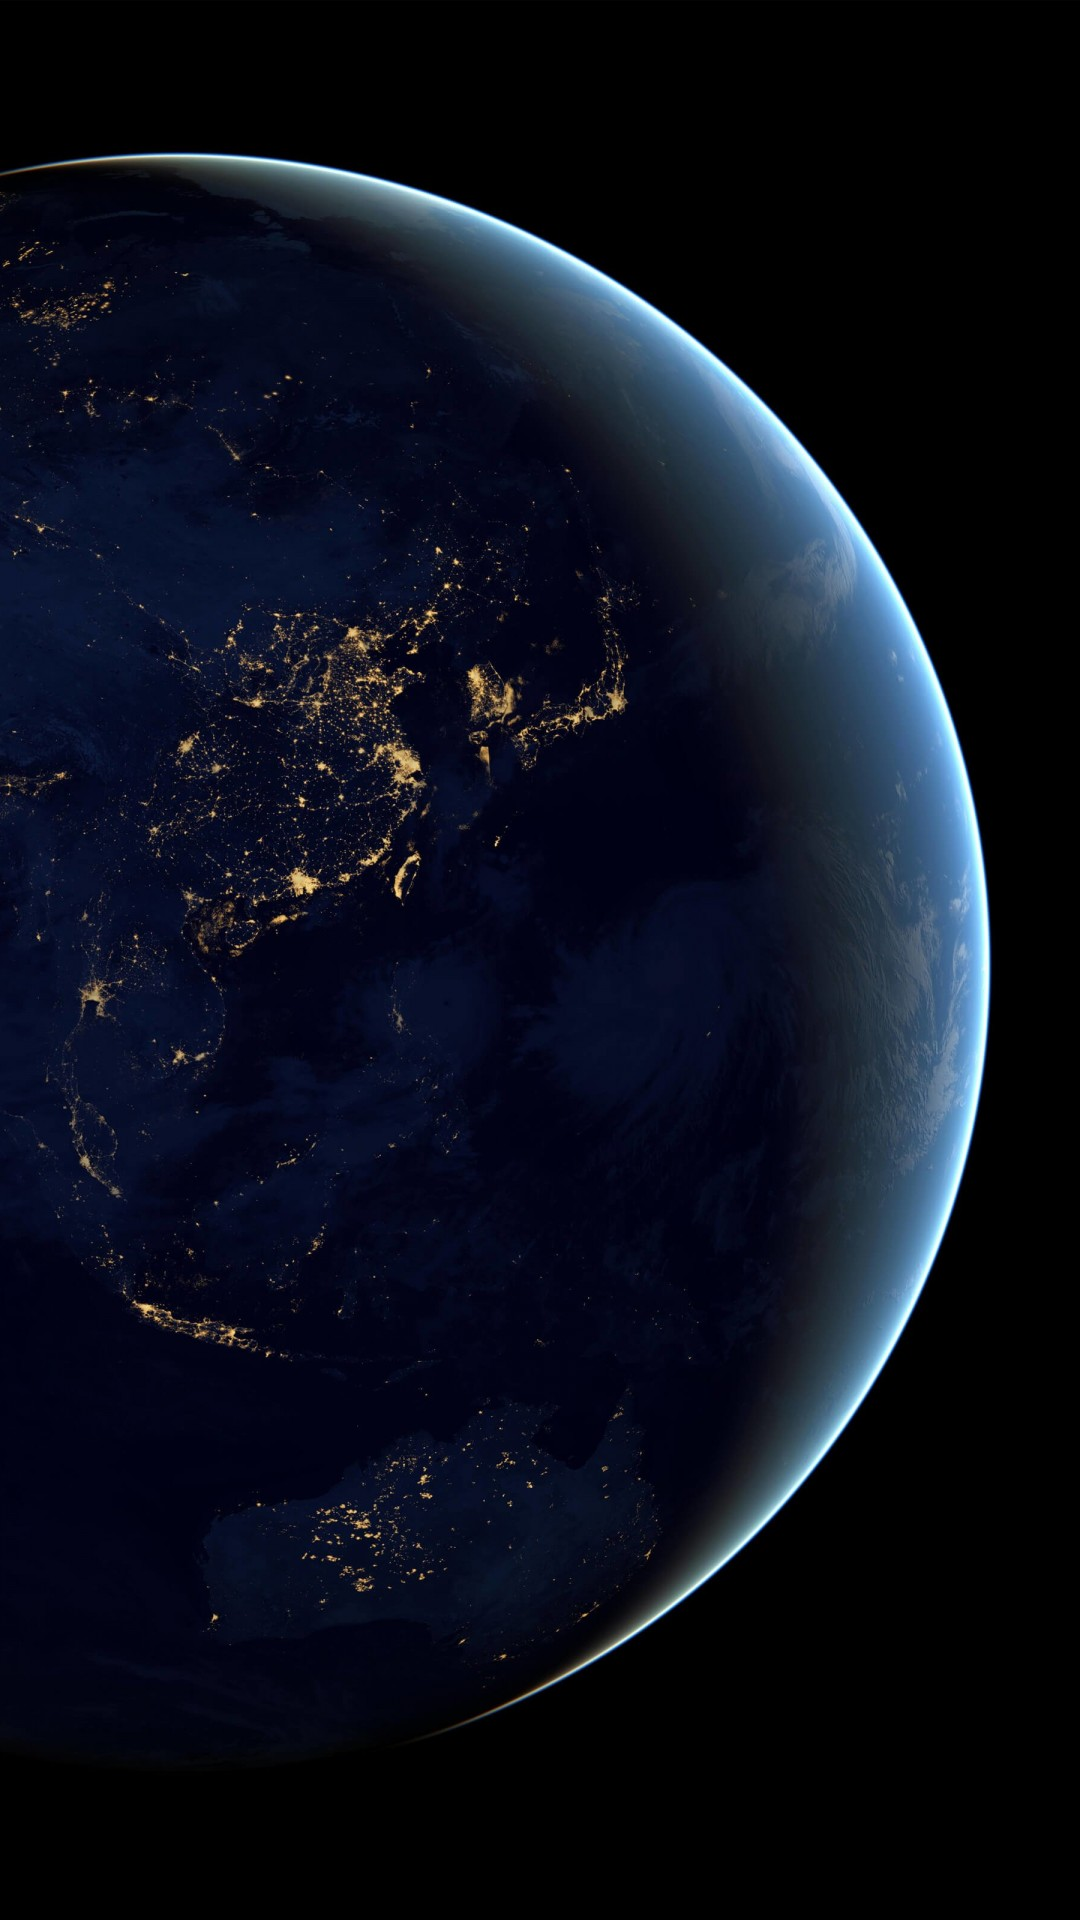 Earth At Night Seen From Space Wallpaper for Google Nexus 5X